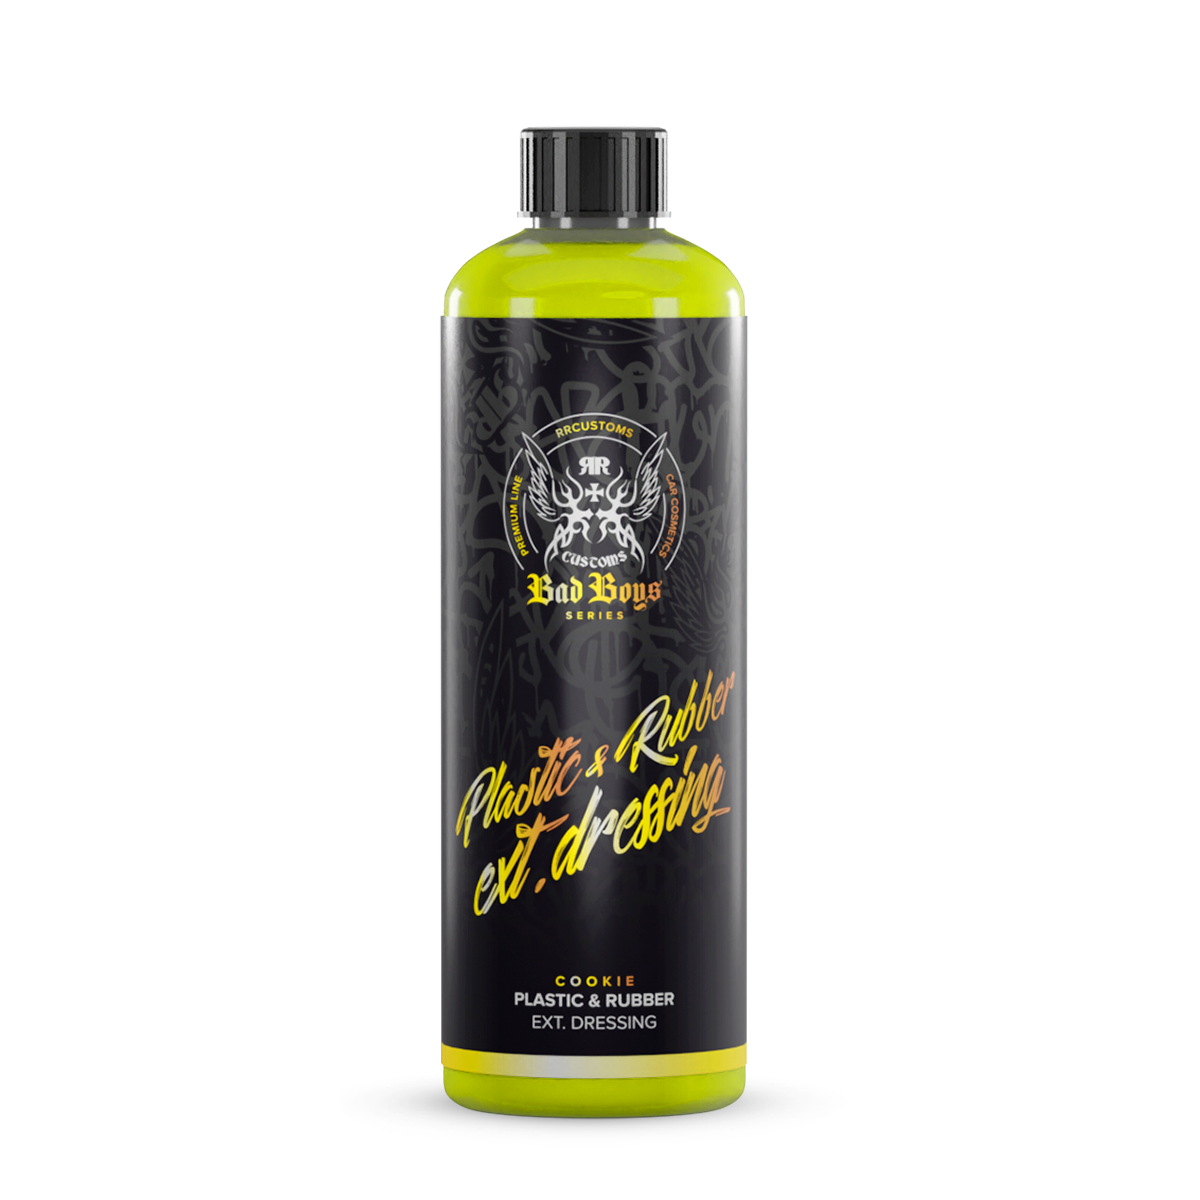 RRCustoms Bad Boys Plastic & Rubber Ext. Dressing - impregnace vnějších plastů a pryže 500ml